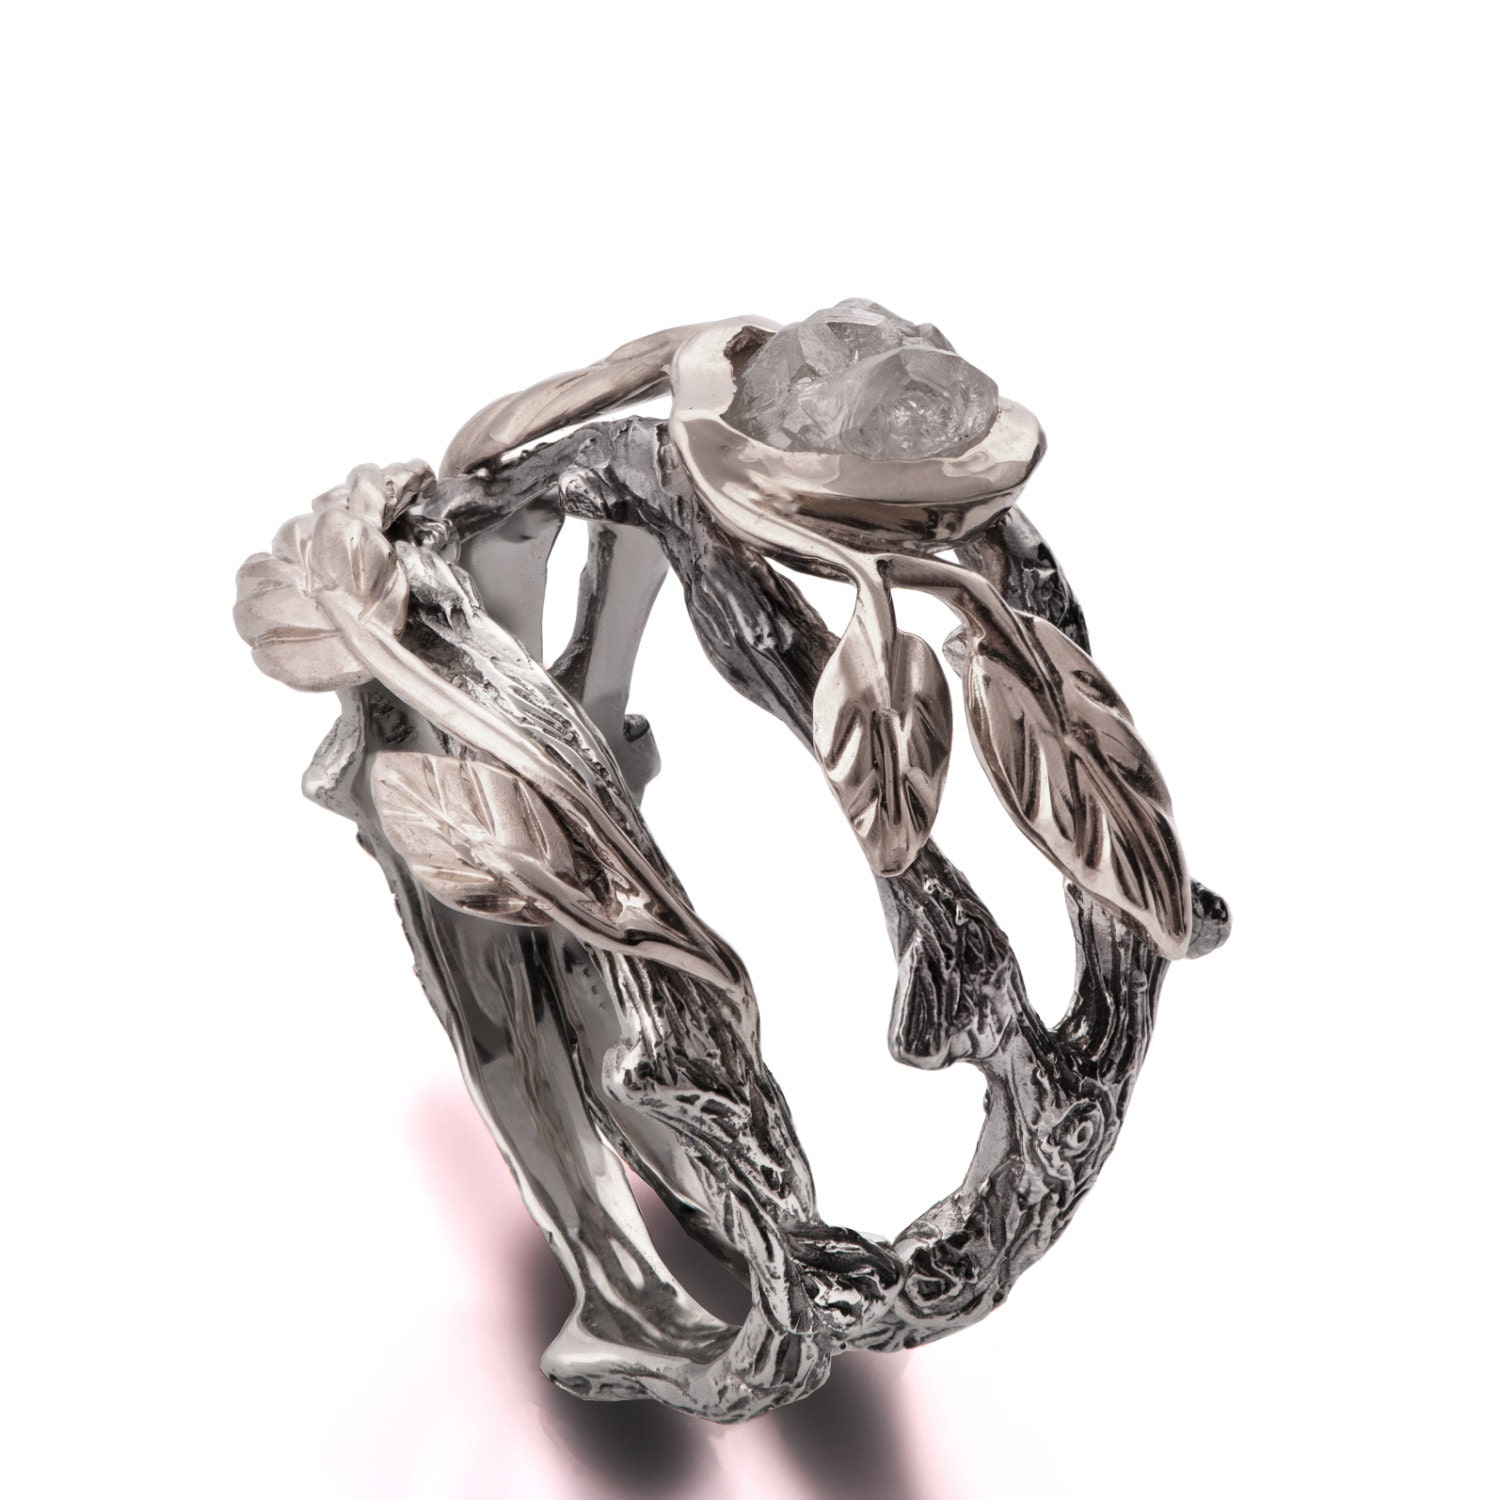 Twig and Leaf Engagement Ring 18K White Gold Rough Diamond